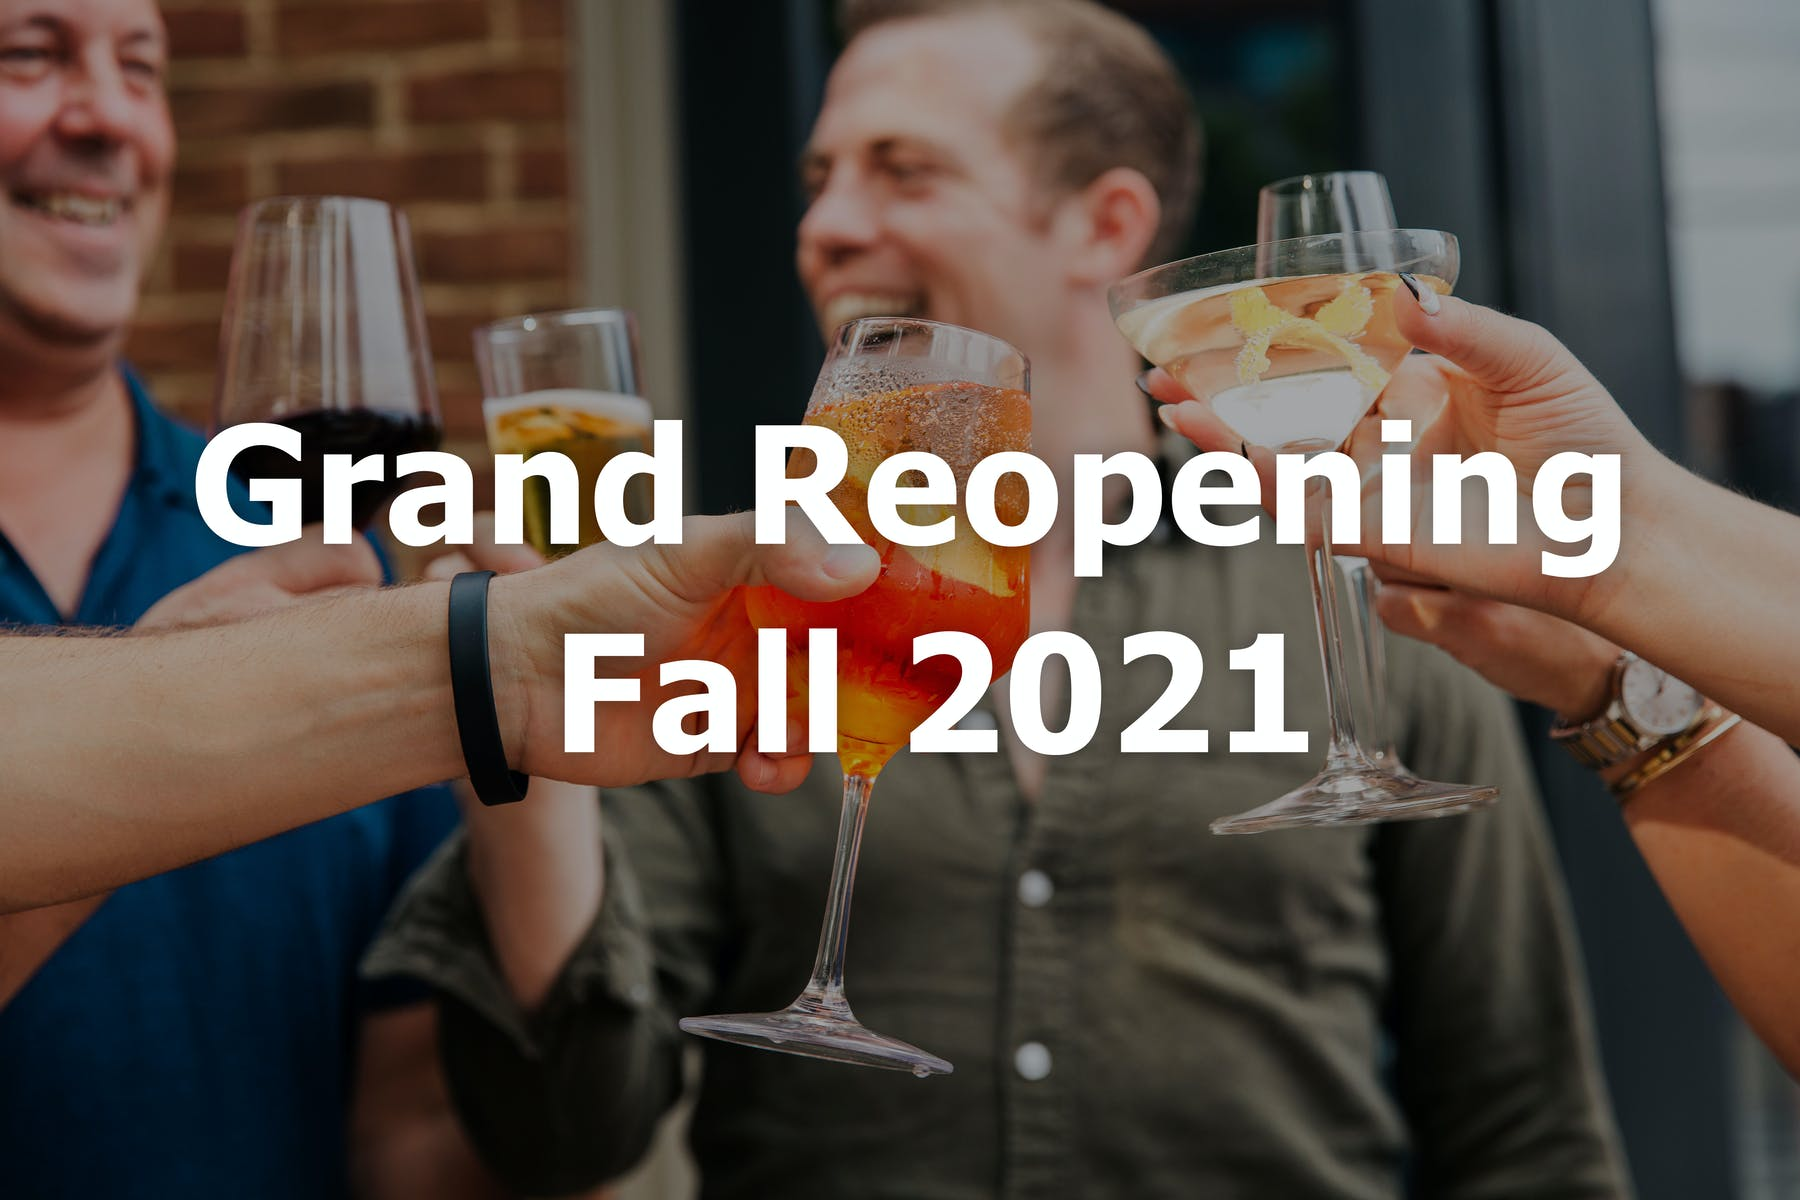 Germantown Cafe grand reopening fall 2021